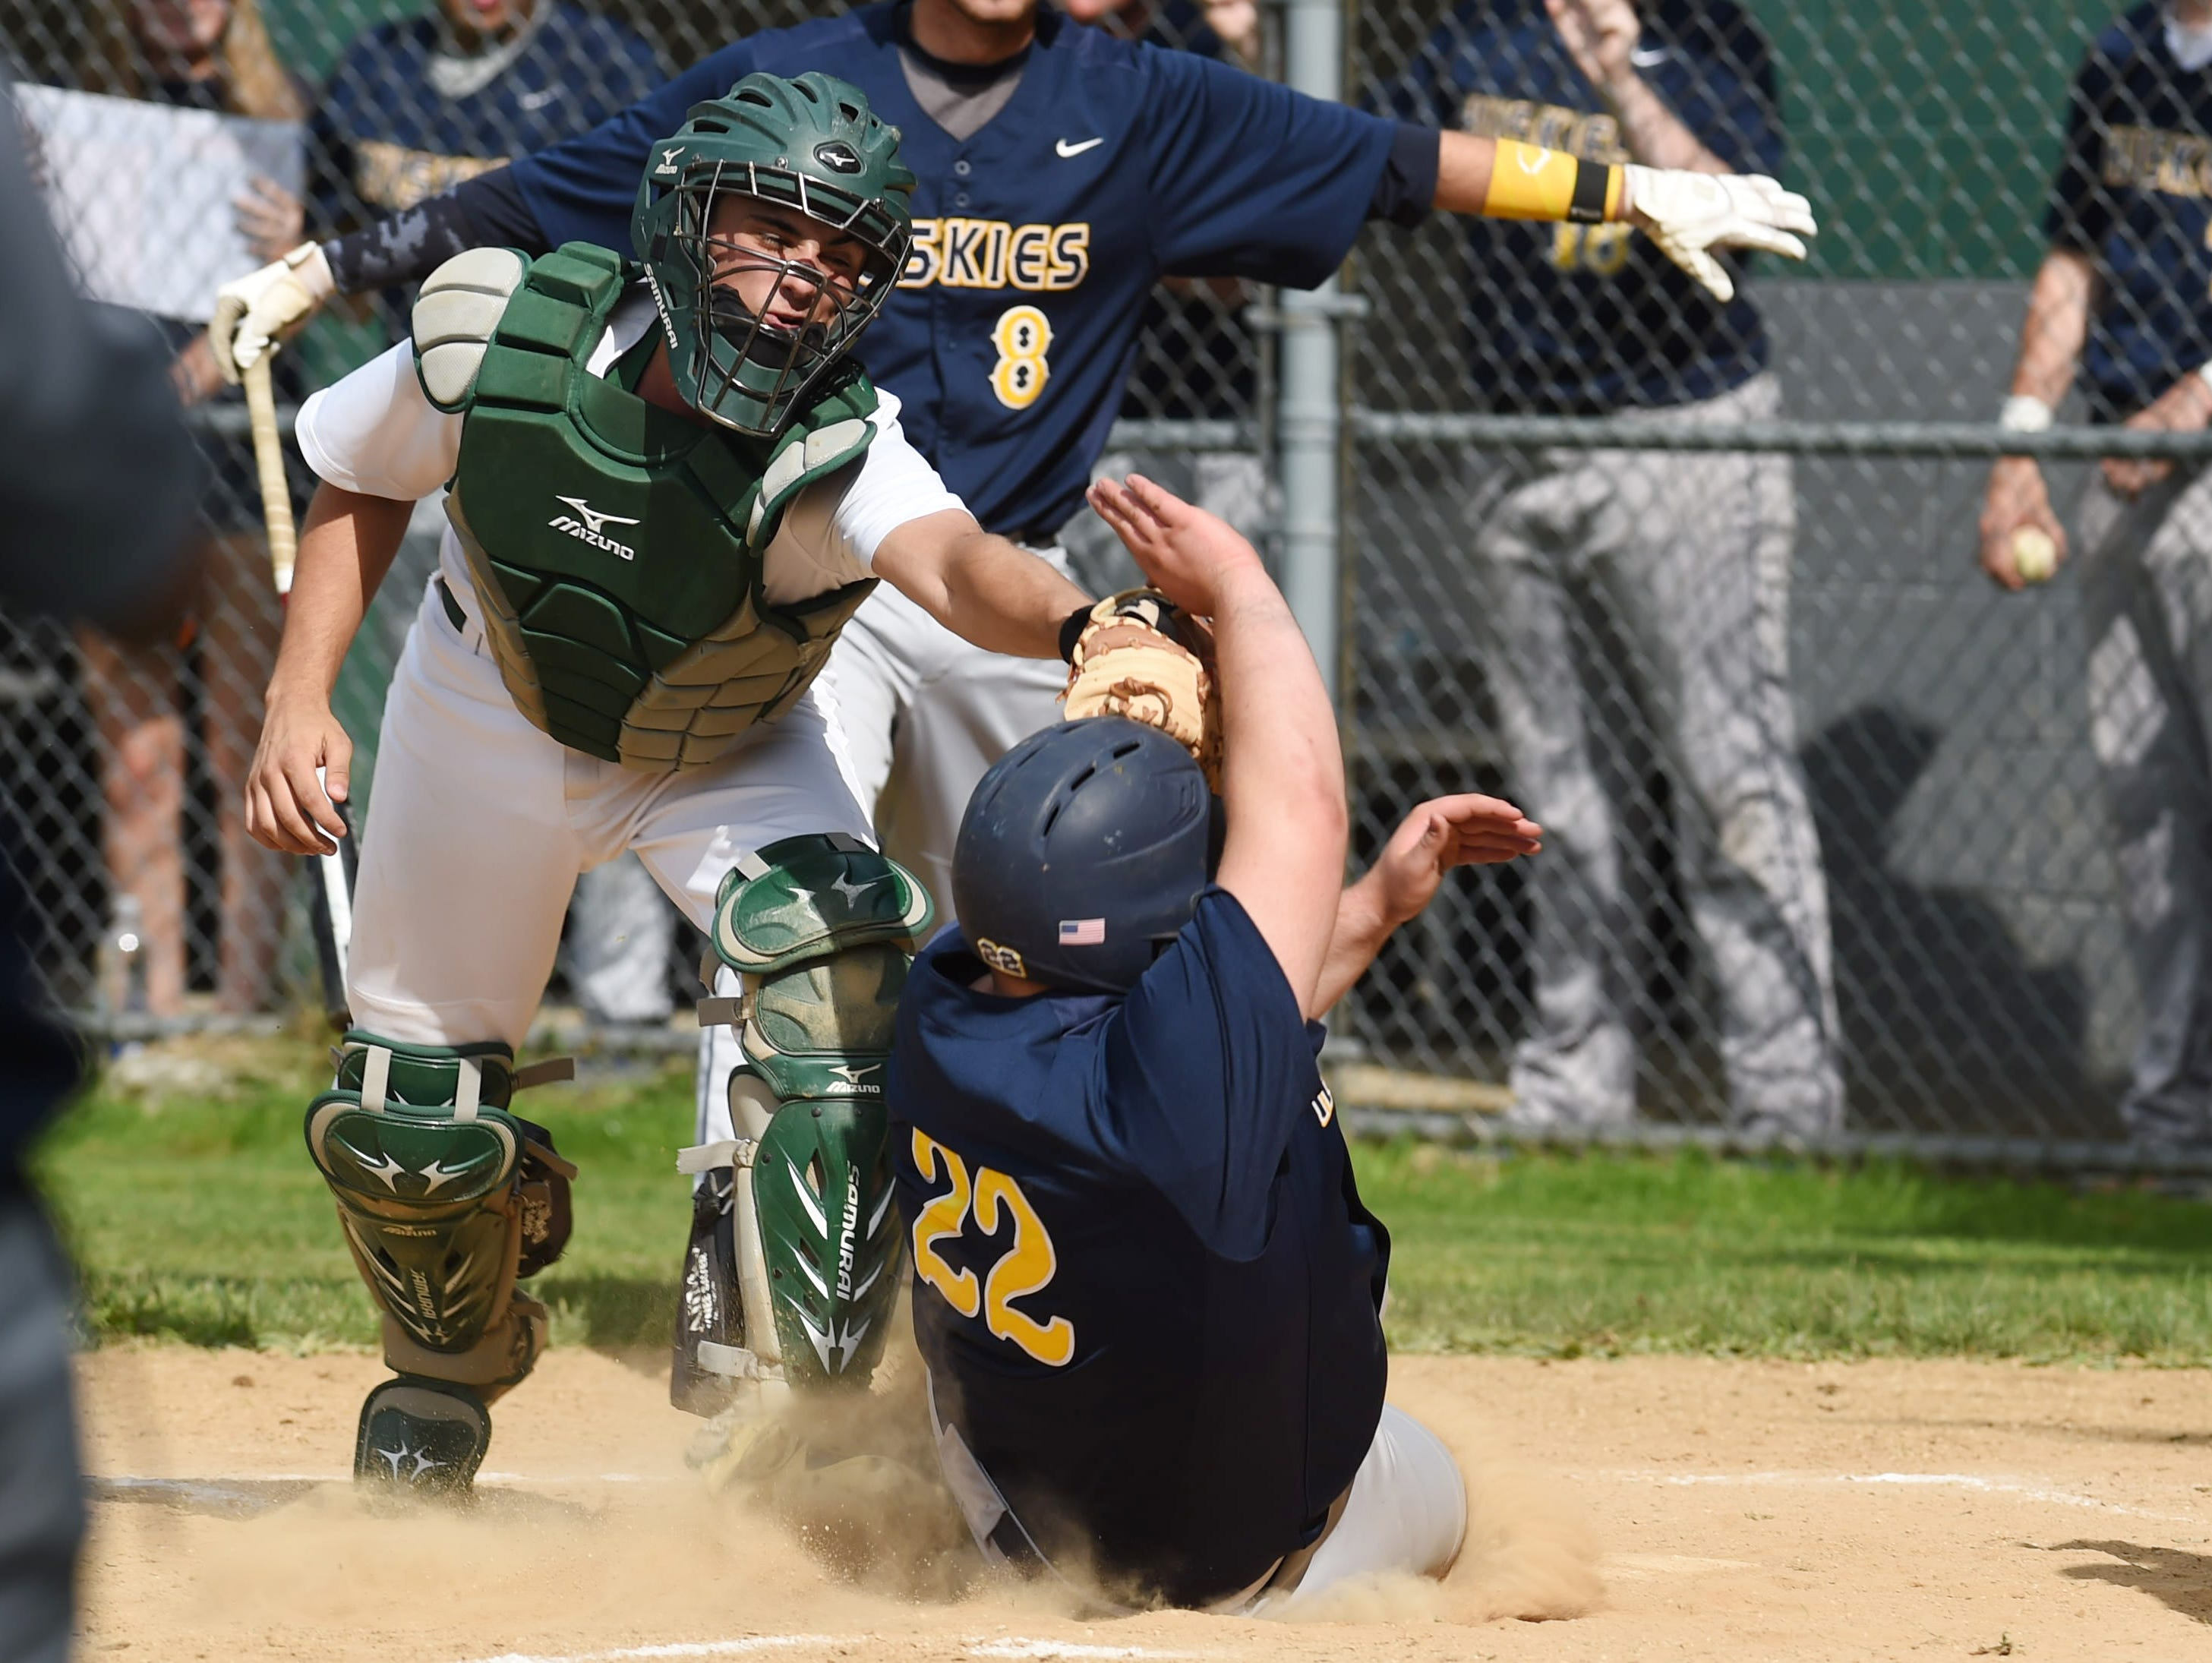 Spackenkill's Joe Arcuri, left, tags out Highland's Frank Alfonso, right, at home plate during Monday's game.